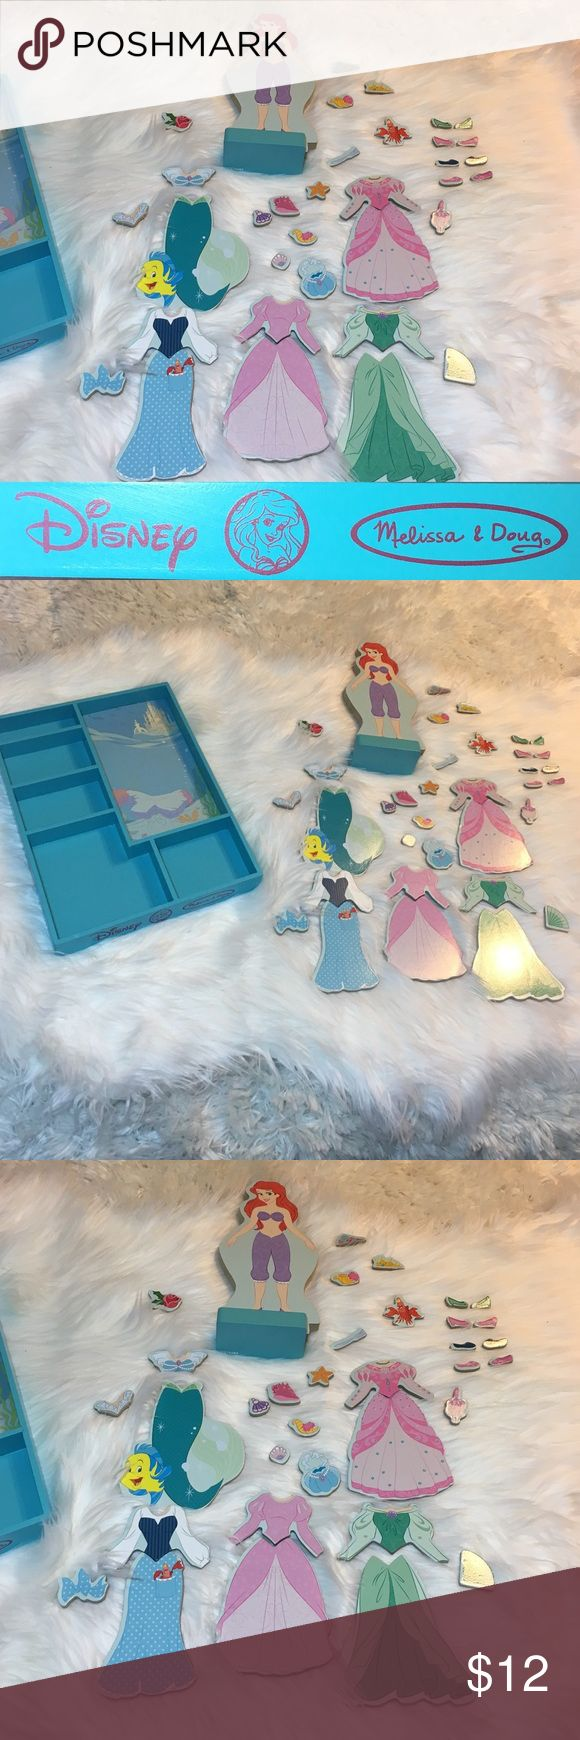 Melissa & Doug Little Mermaid Ariel Wooden Doll Walt Disney  Ariel wooden magnetic dress-up doll. Mix and match the magnetic pieces to tell the tale of the little mermaid or create your own fashion story with sturdy wooden pieces in coordinating designs they are countless stylish combinations. Not missing any pieces and can be considered new in box because when this was sold it just had plastic over the container. Originally bought at Carters (baby Store). Feel free to ask questions and make…